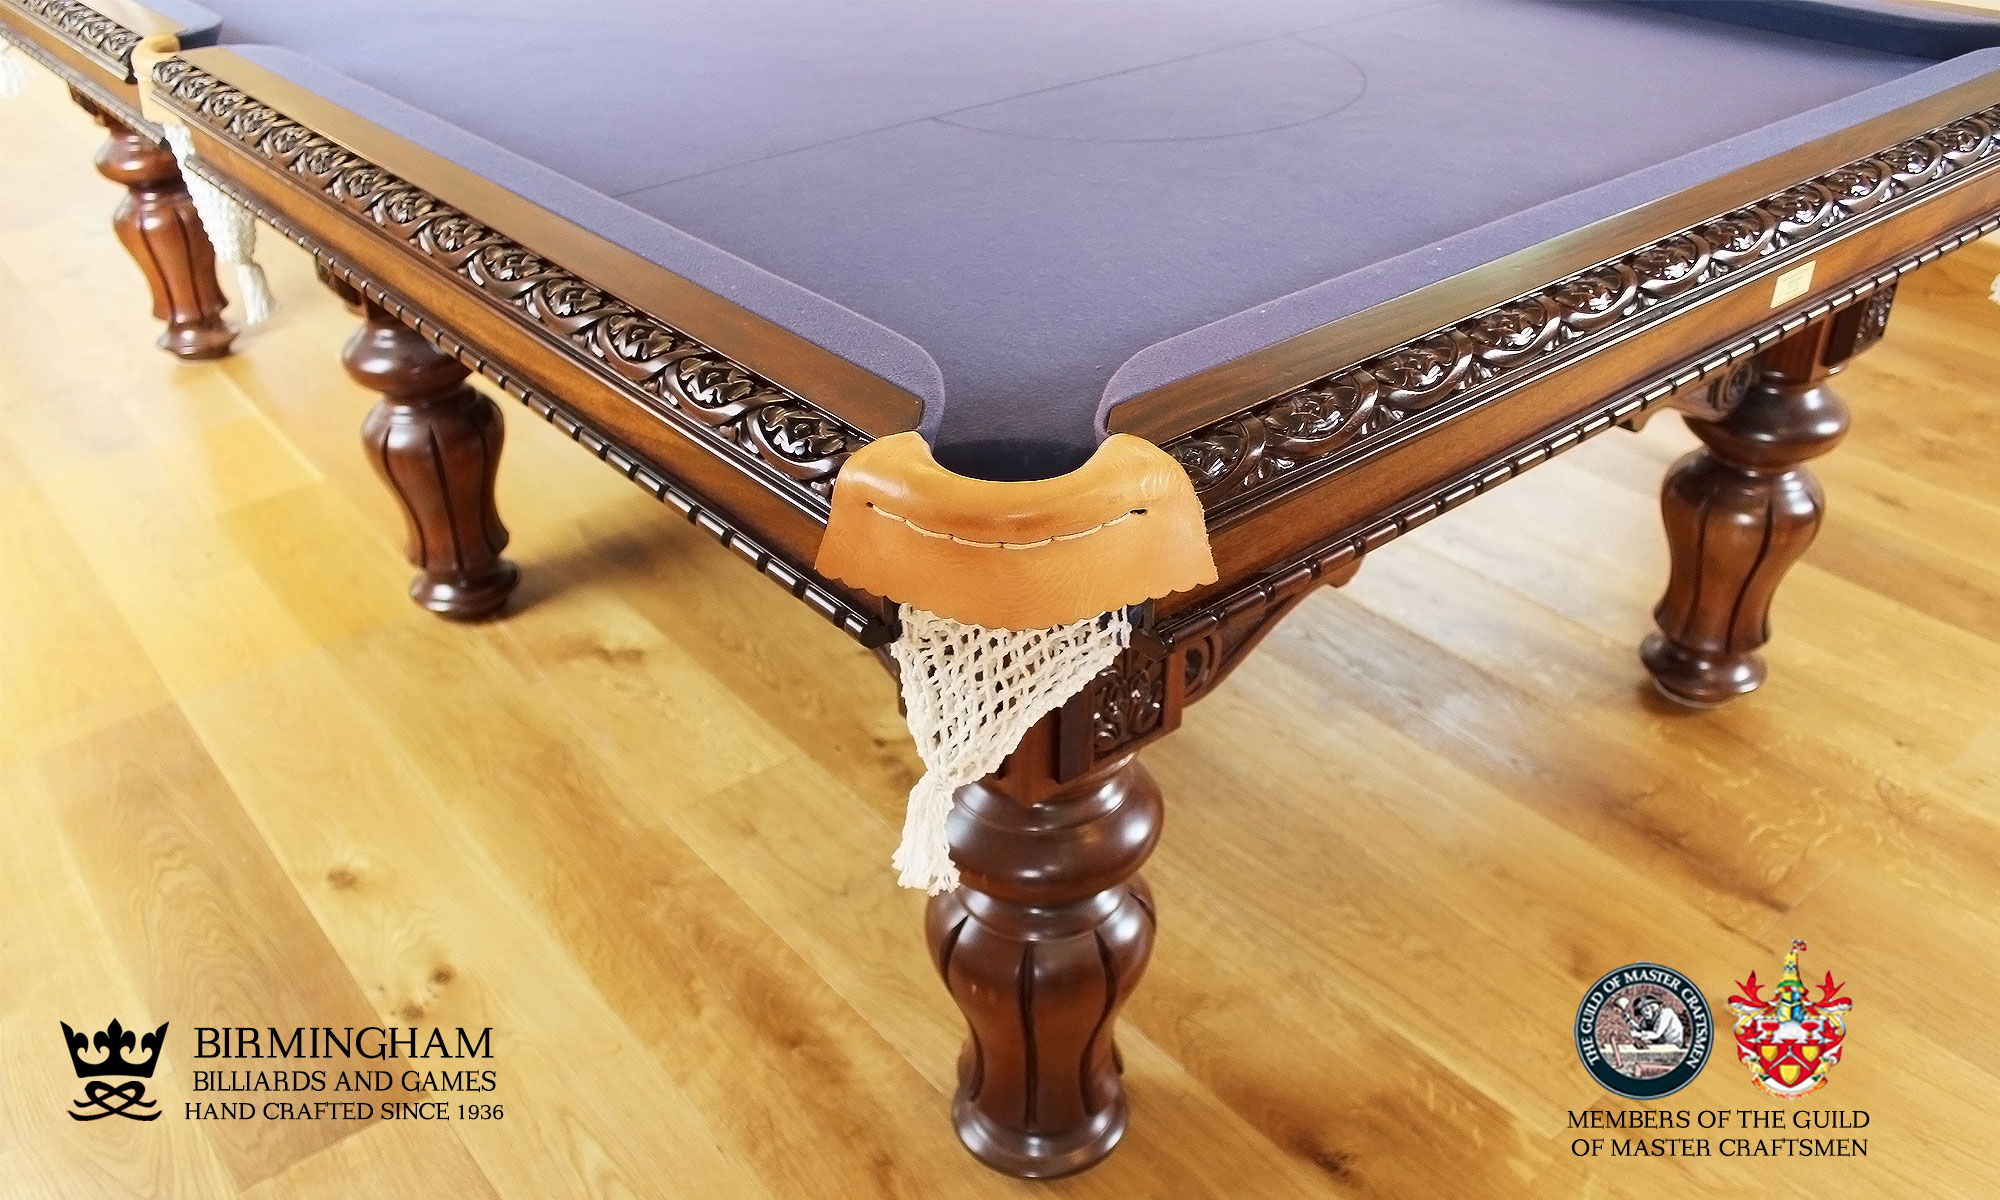 The Blenheim-hand carved pool table, corner view